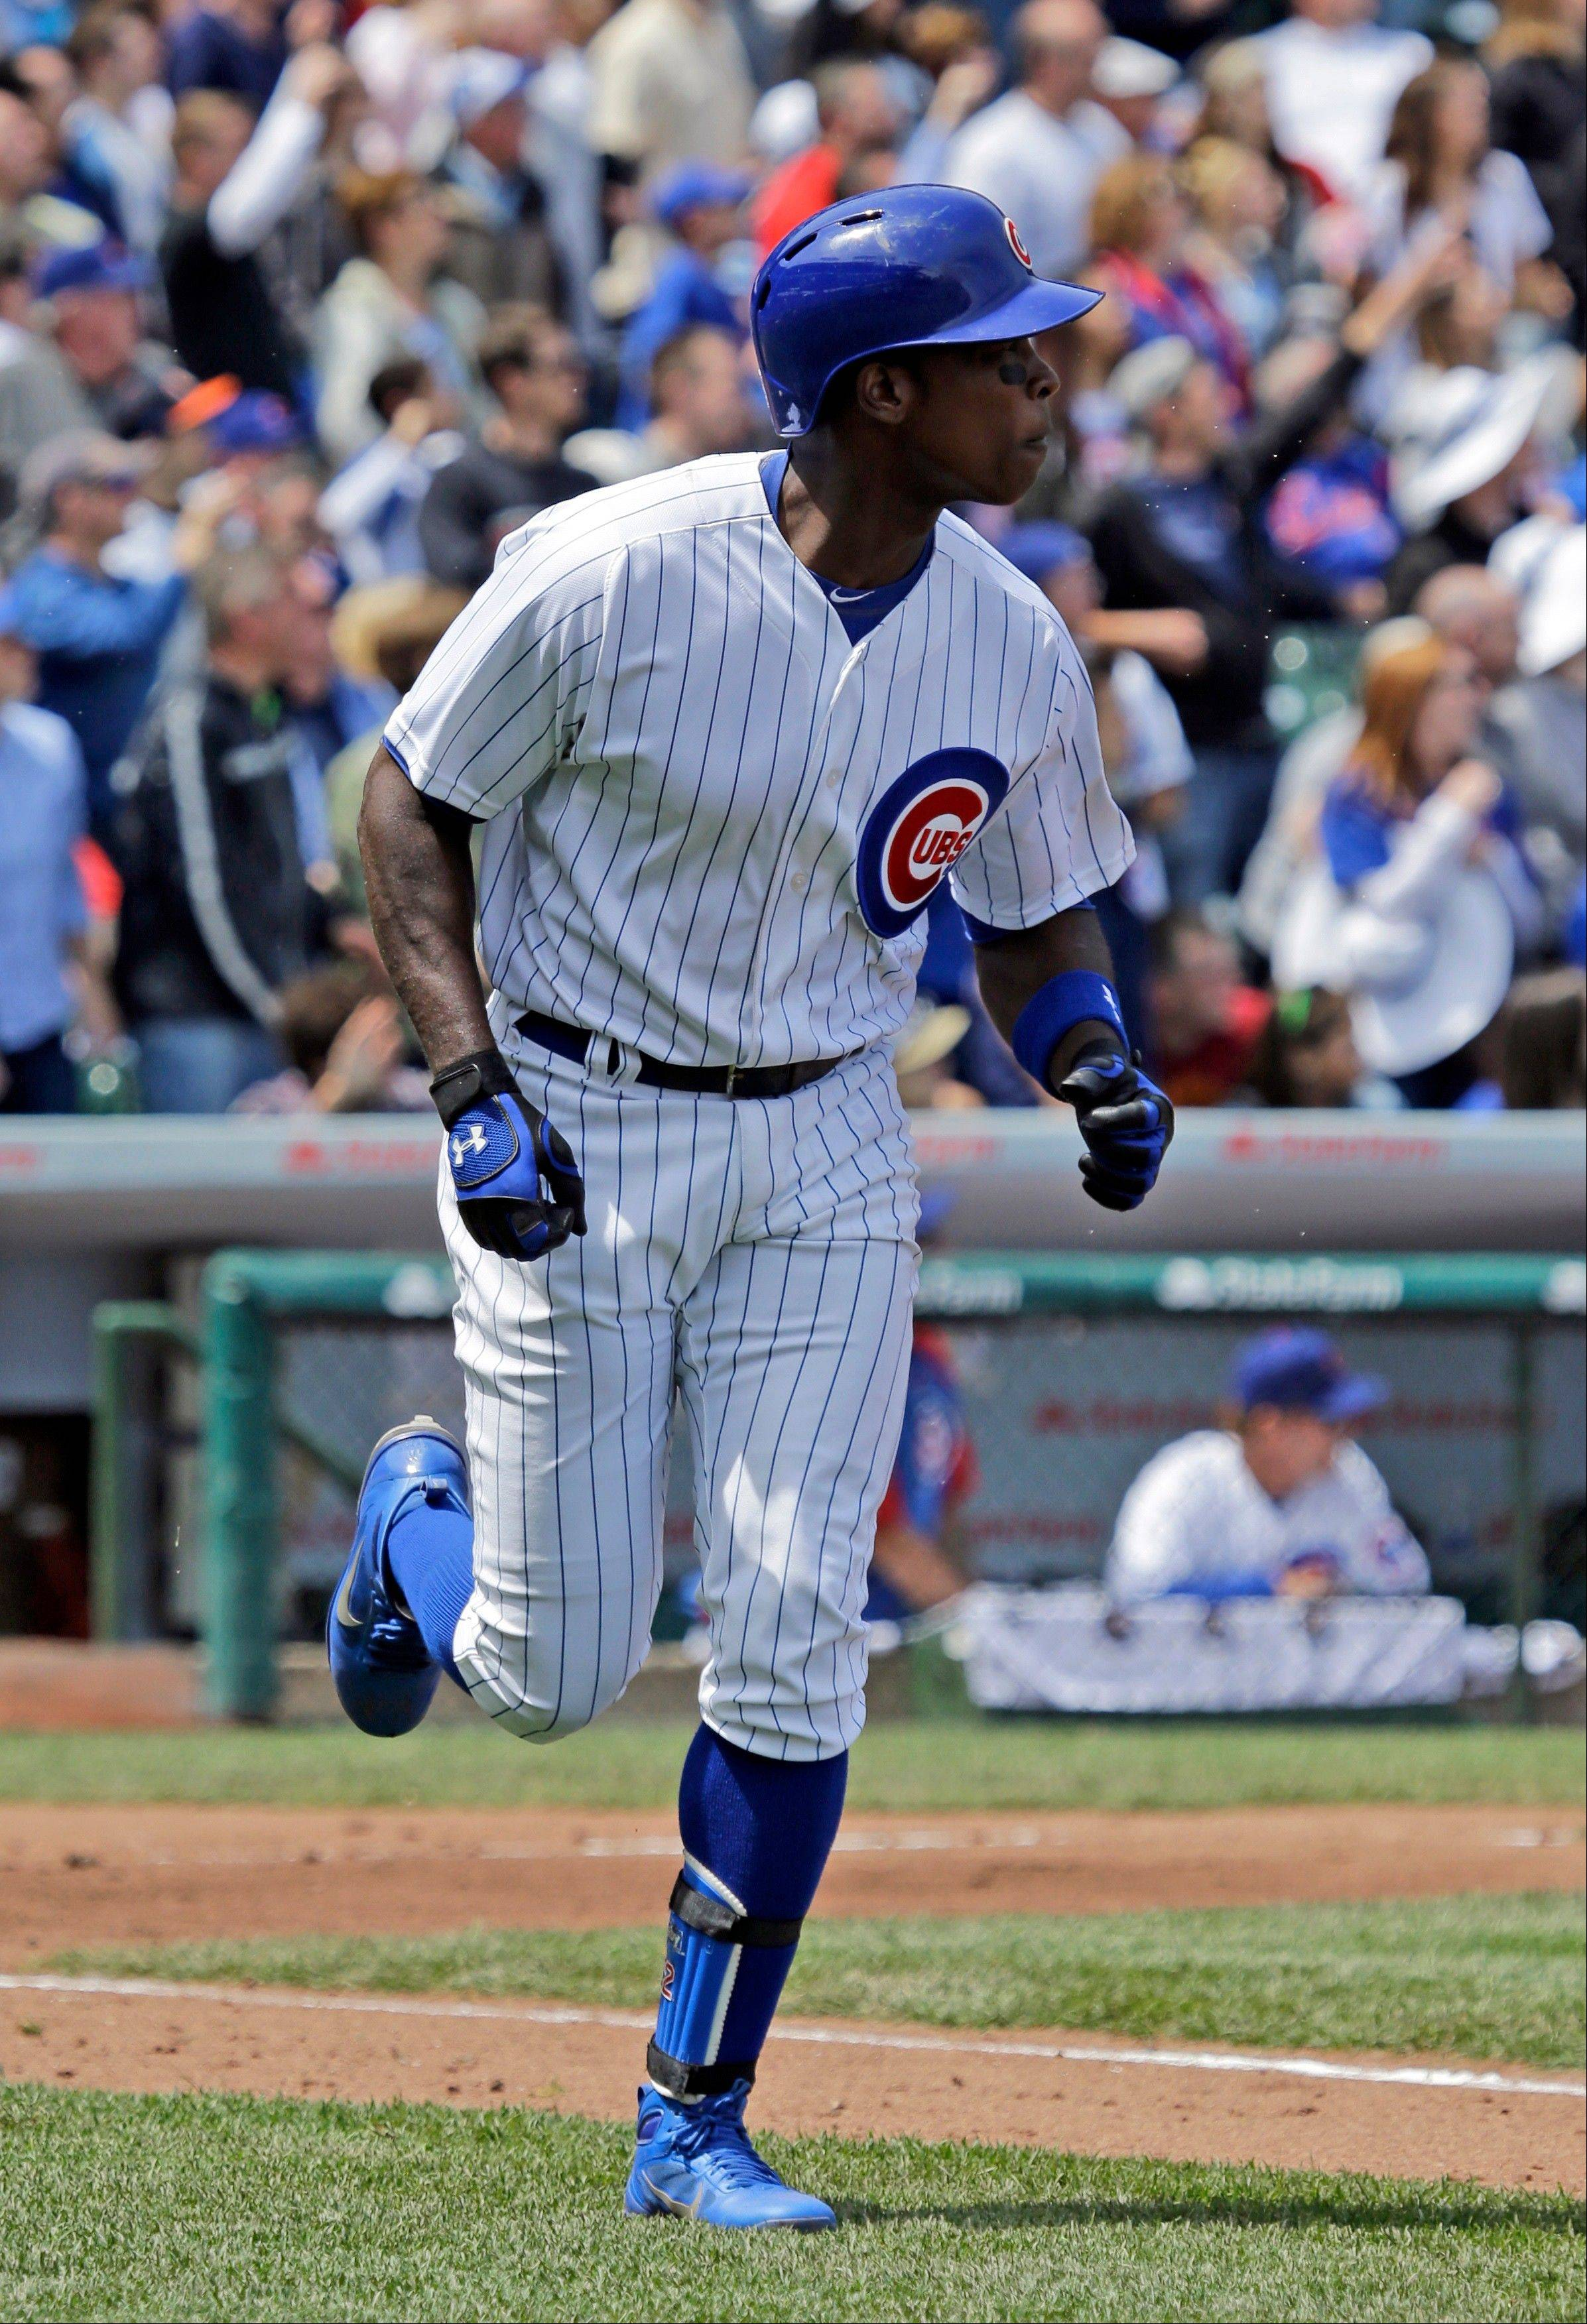 Cubs' Barney (.169) really struggling